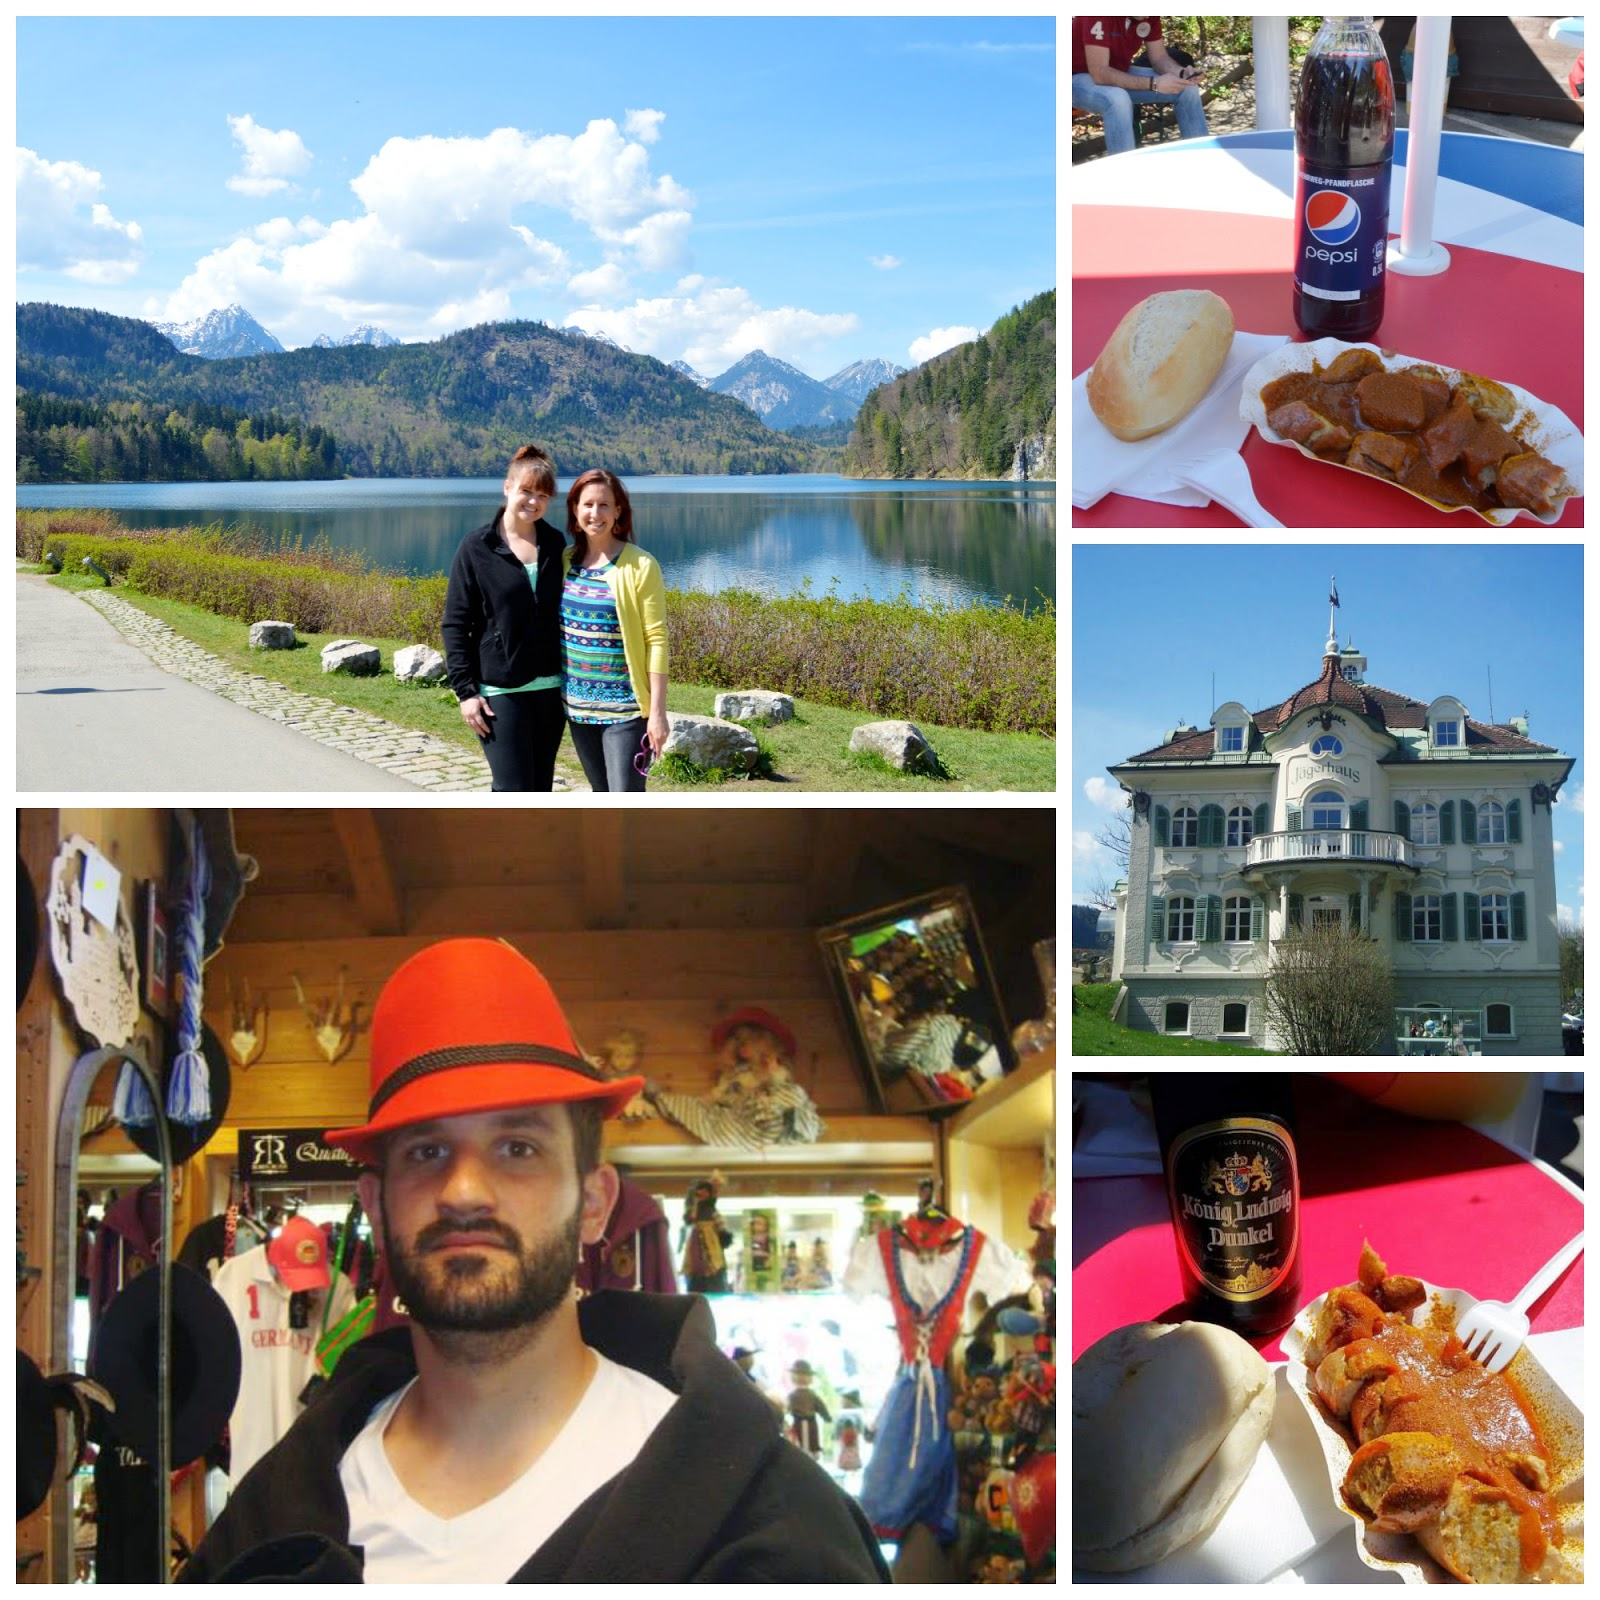 Lunch and Souvenirs in Hohenschwangau, Germany